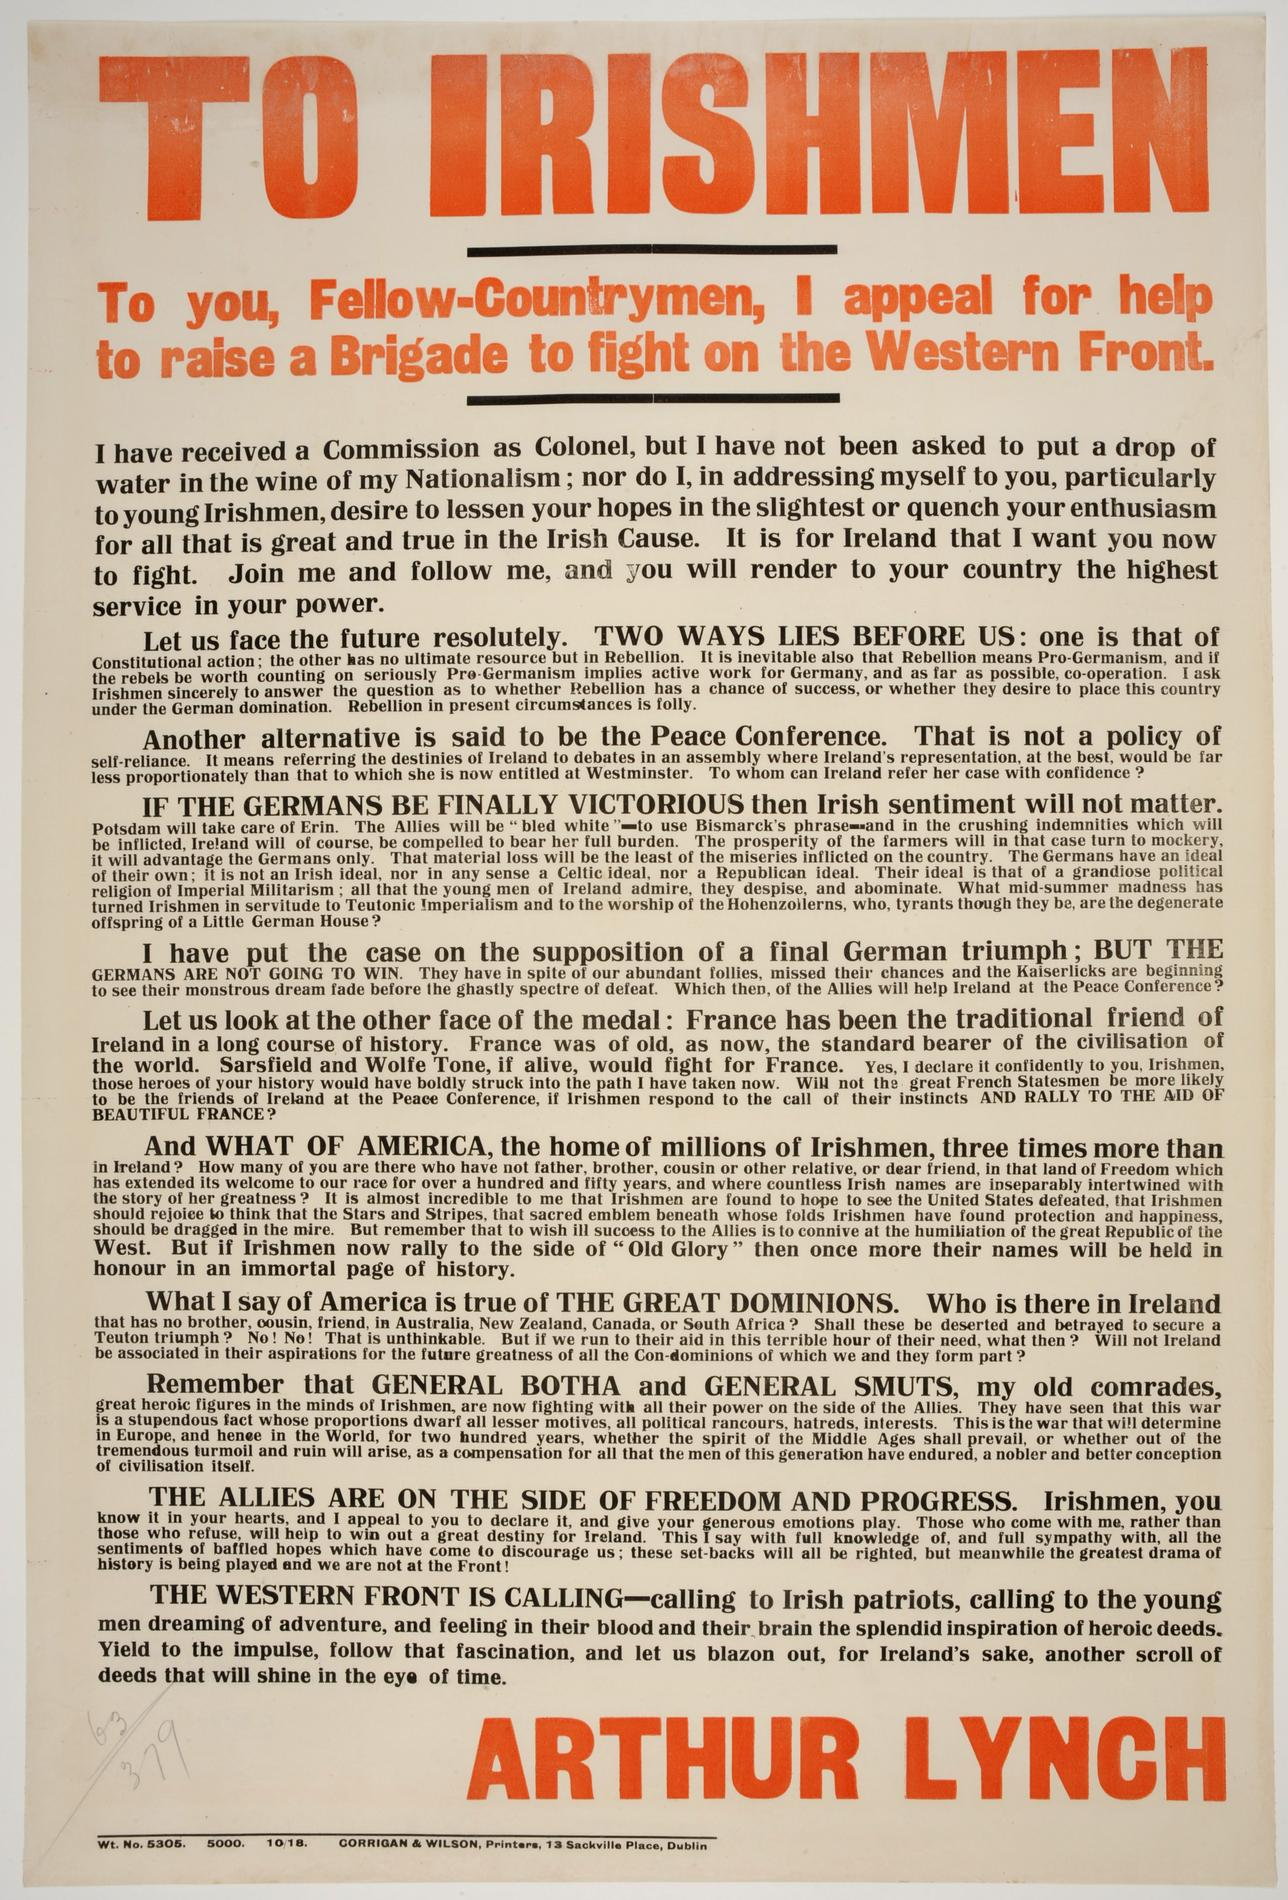 To Irishmen, to you fellow countrymen I appeal for help (Poster)